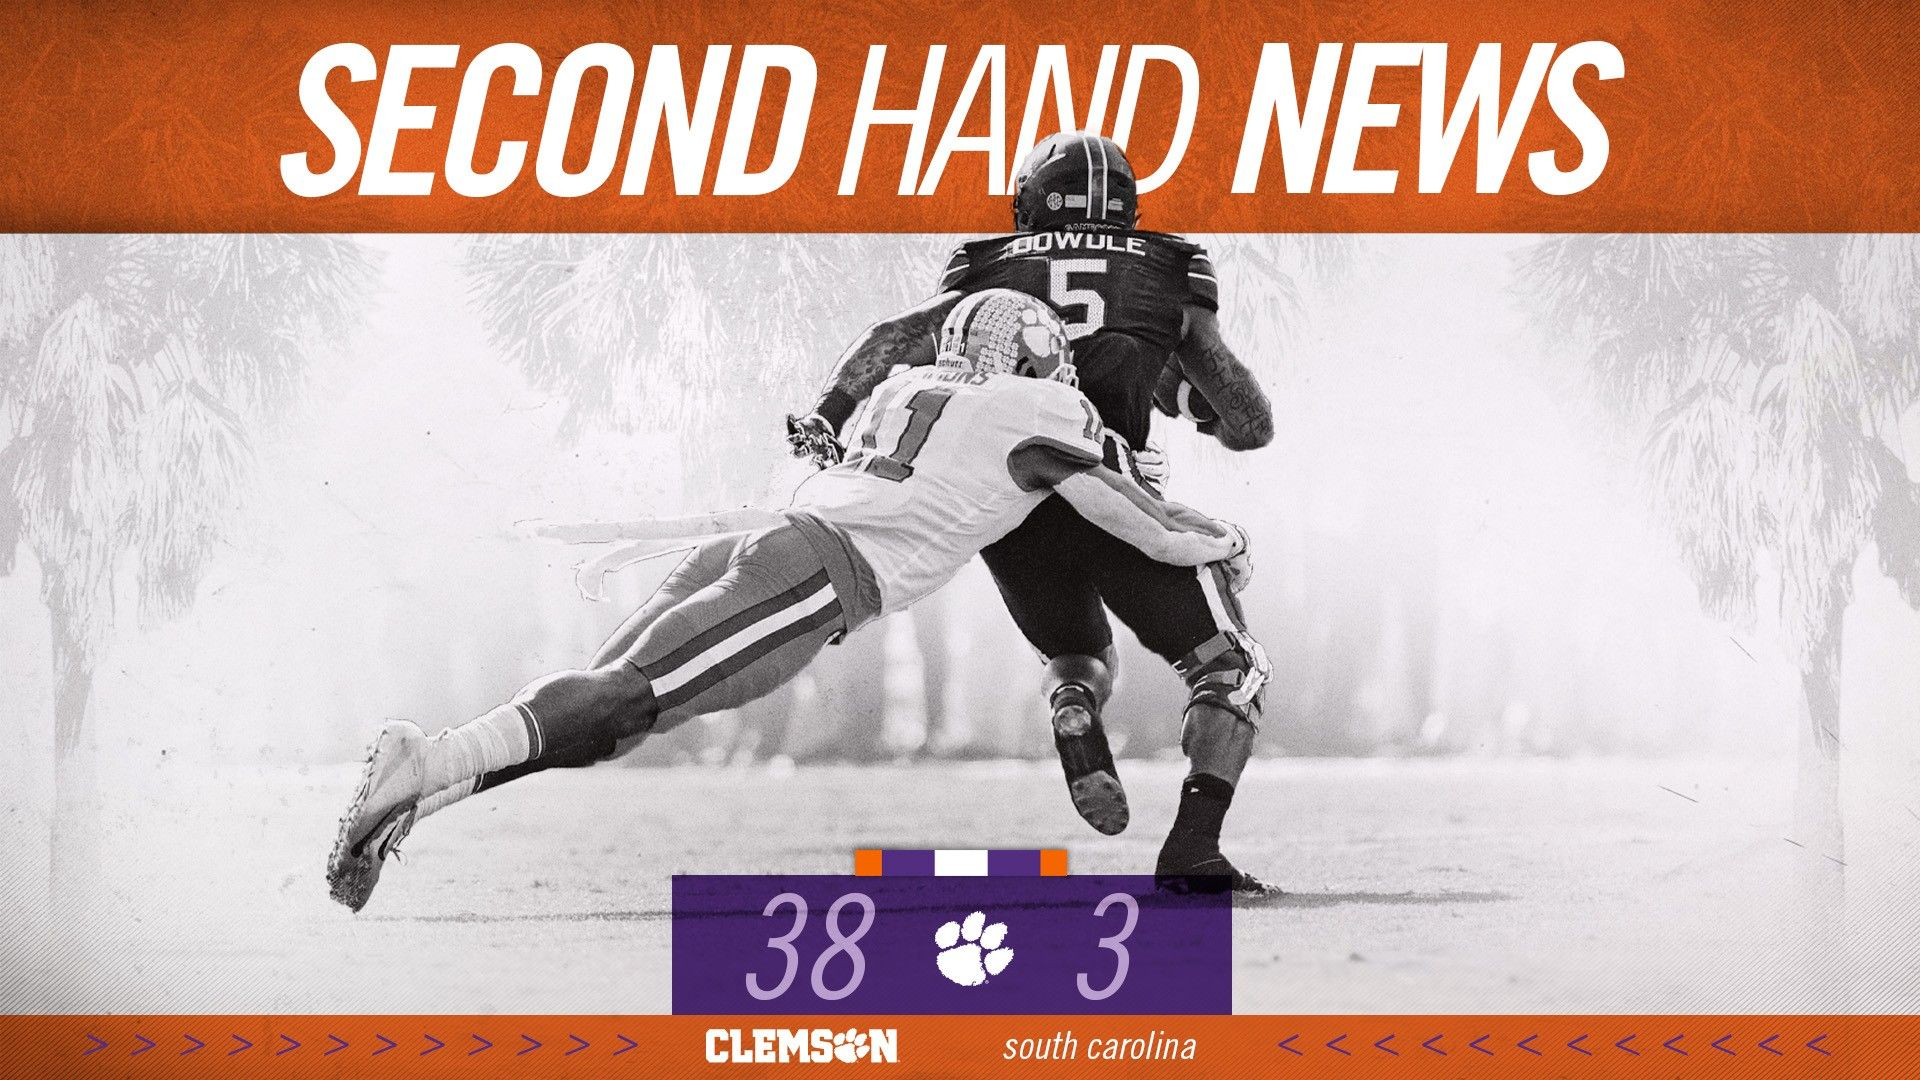 Pin by Valeri Davis on Clemson/Tailgating (With images